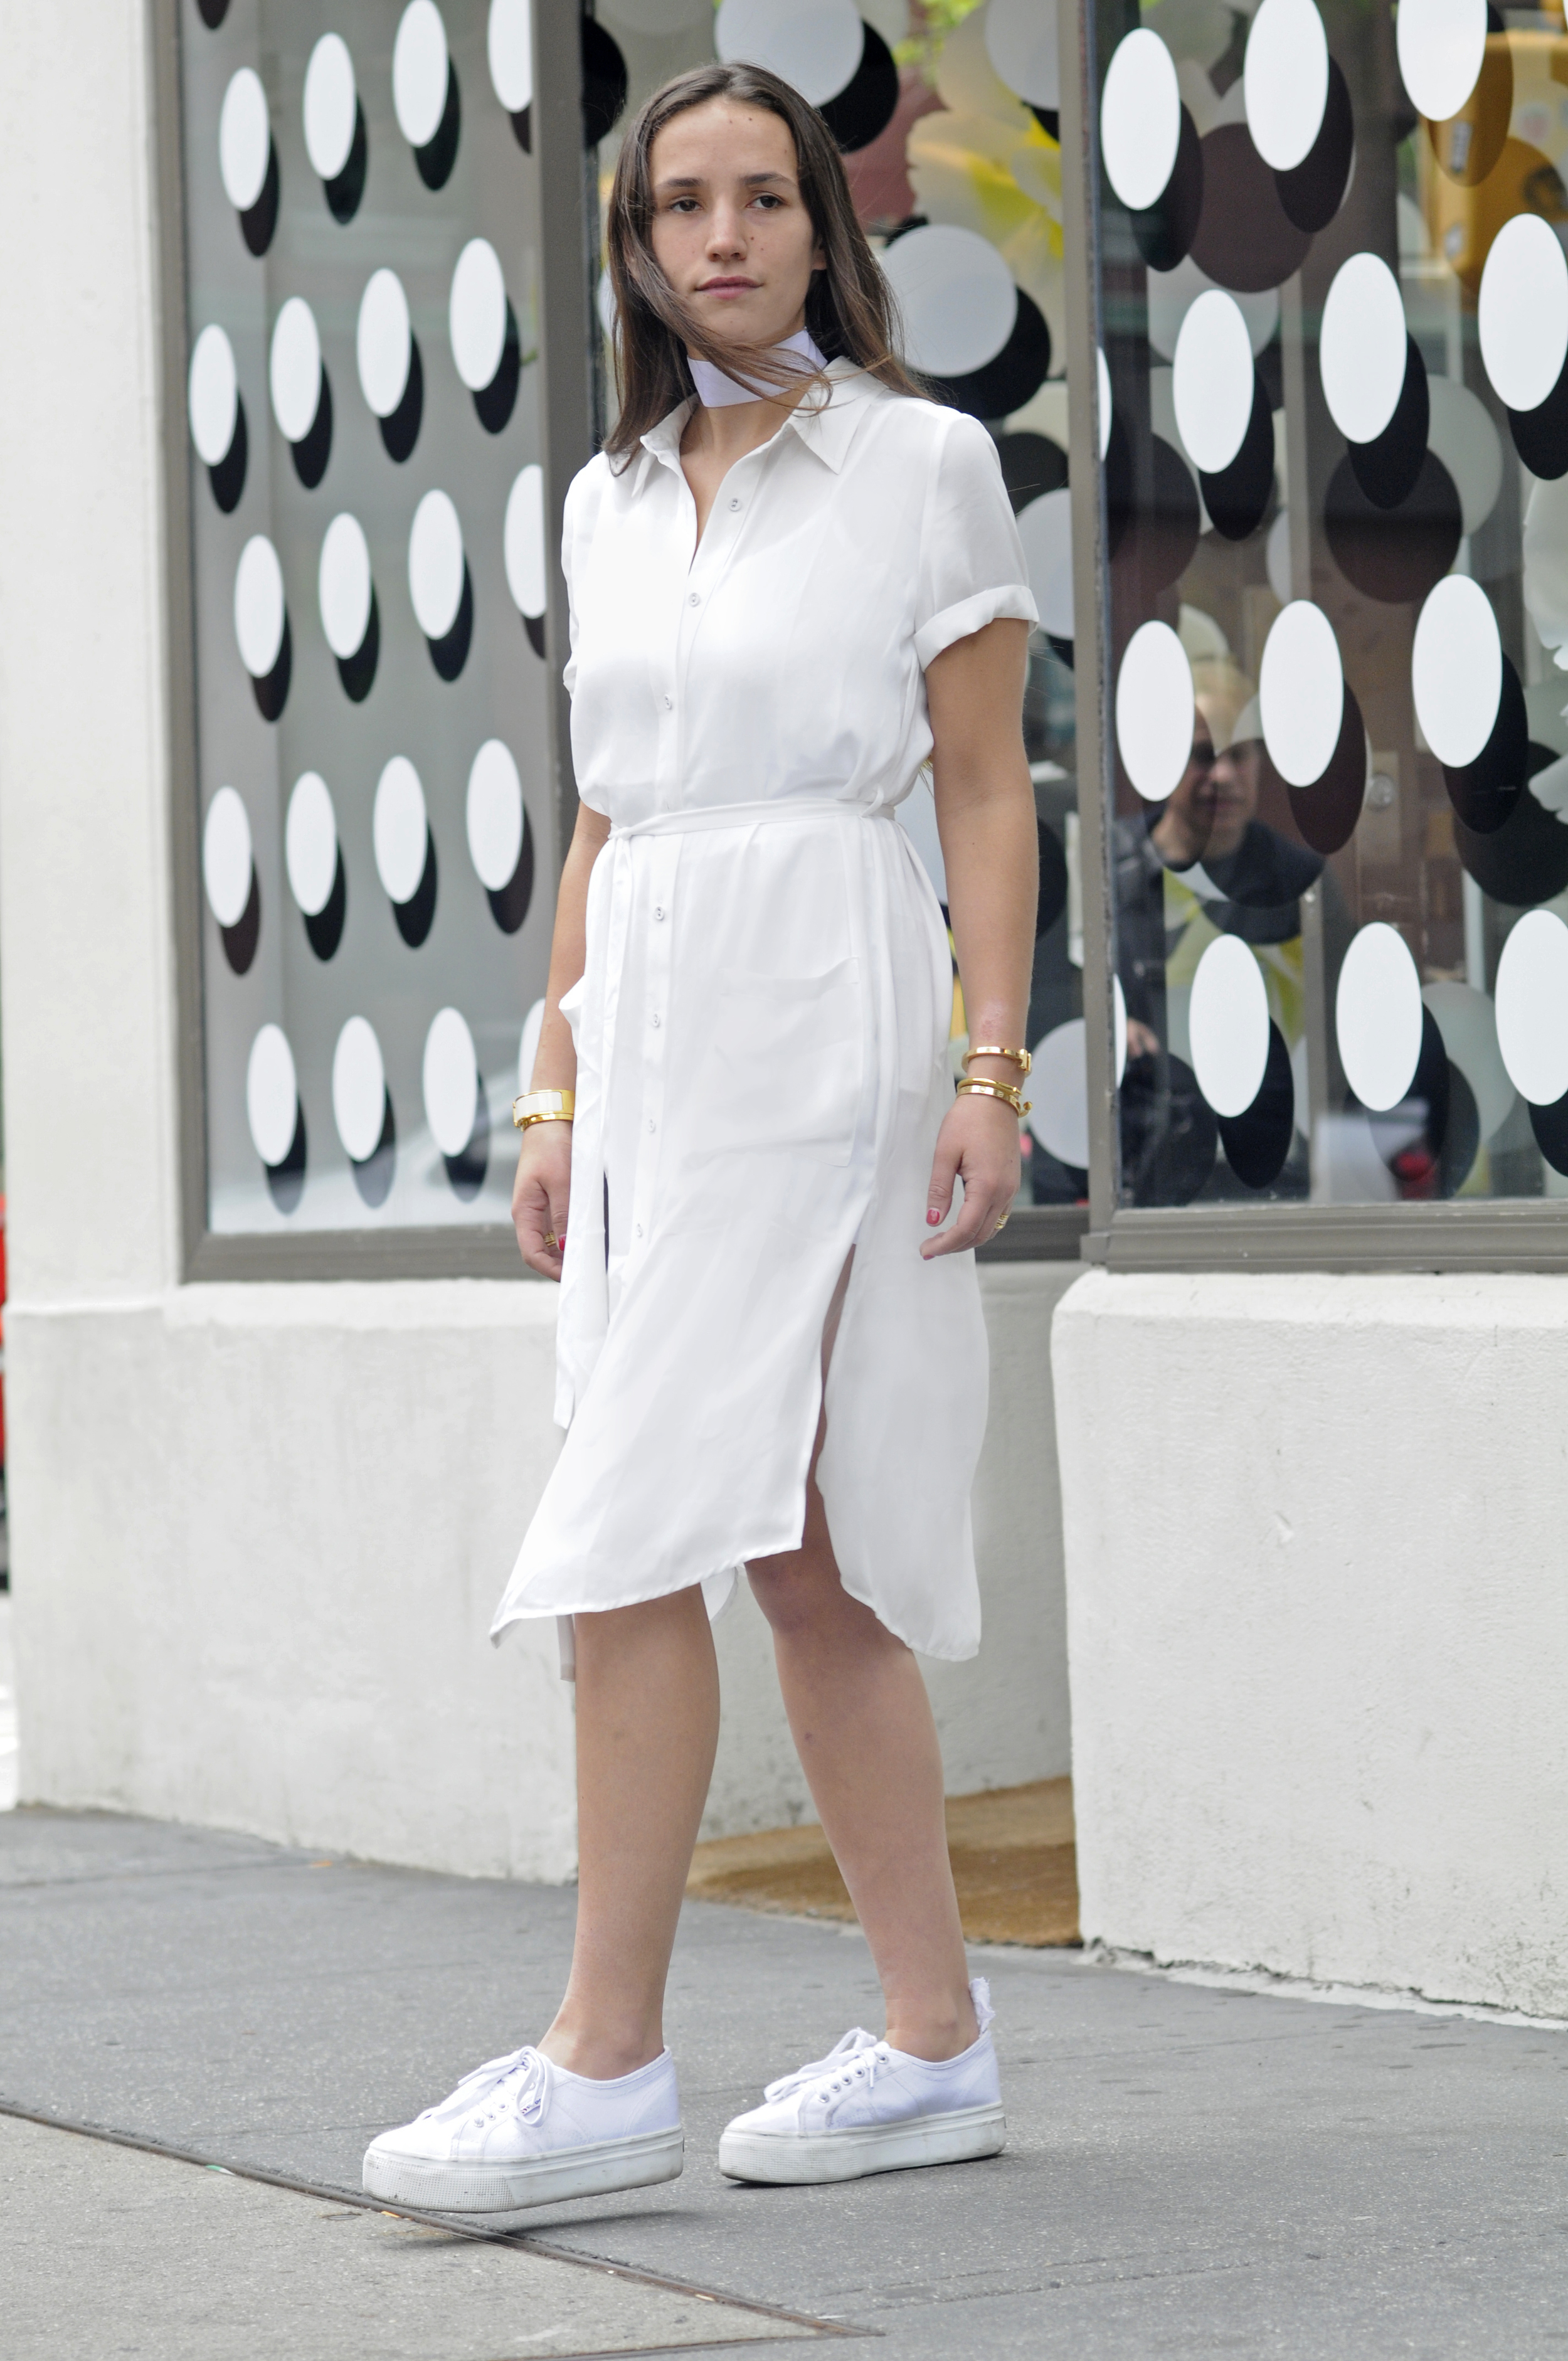 NYC BLOGGER STREET STYLE SOPHIE BICKLEY ALL WHITE